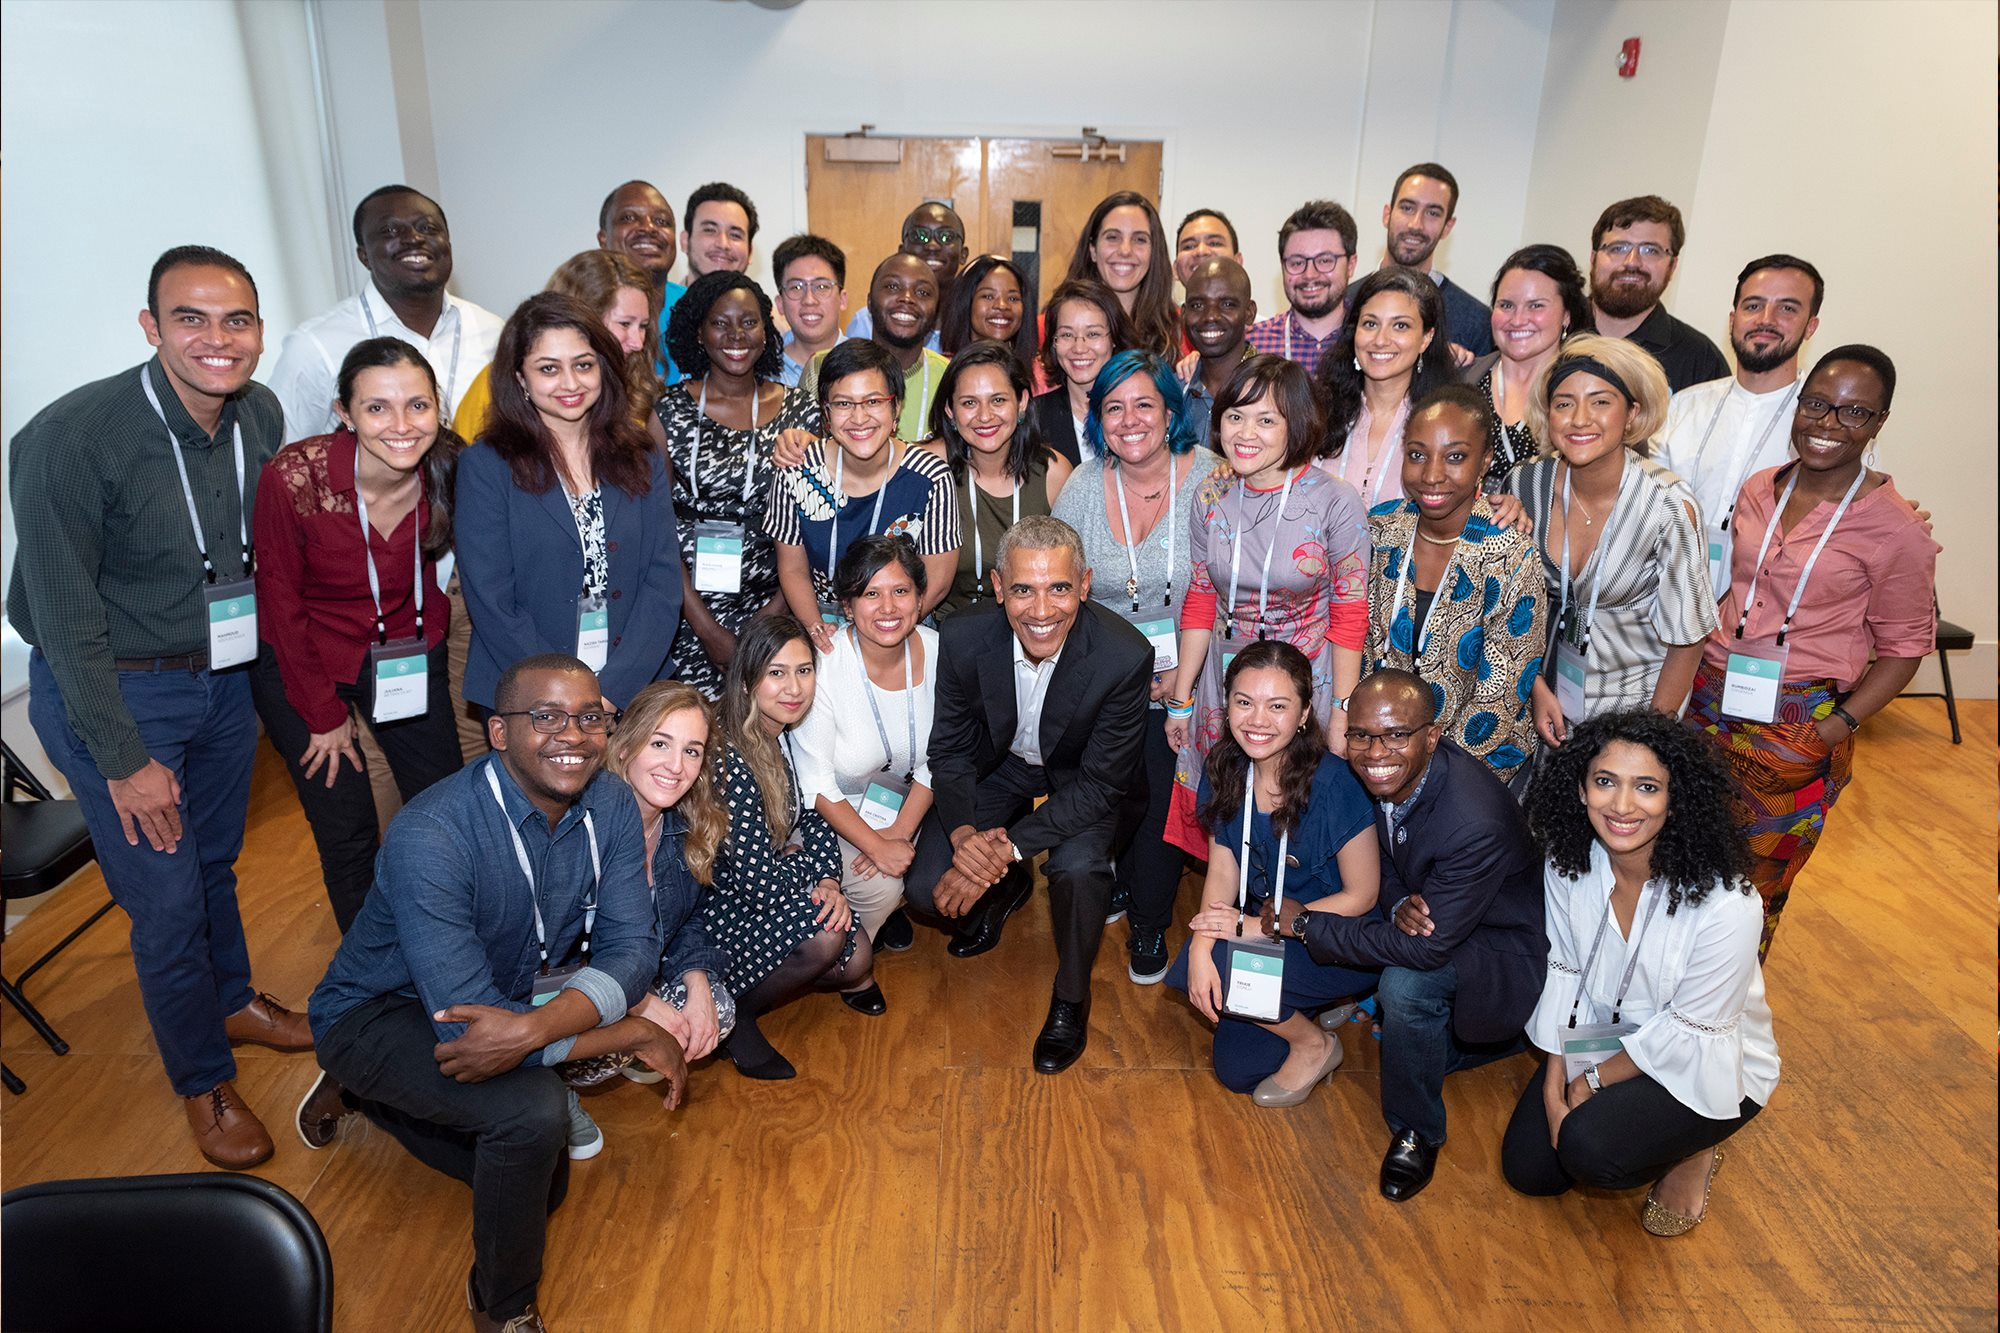 The President Barak Obama and the Obama Foundation Scholars at Columbia University and the University of Chicago.